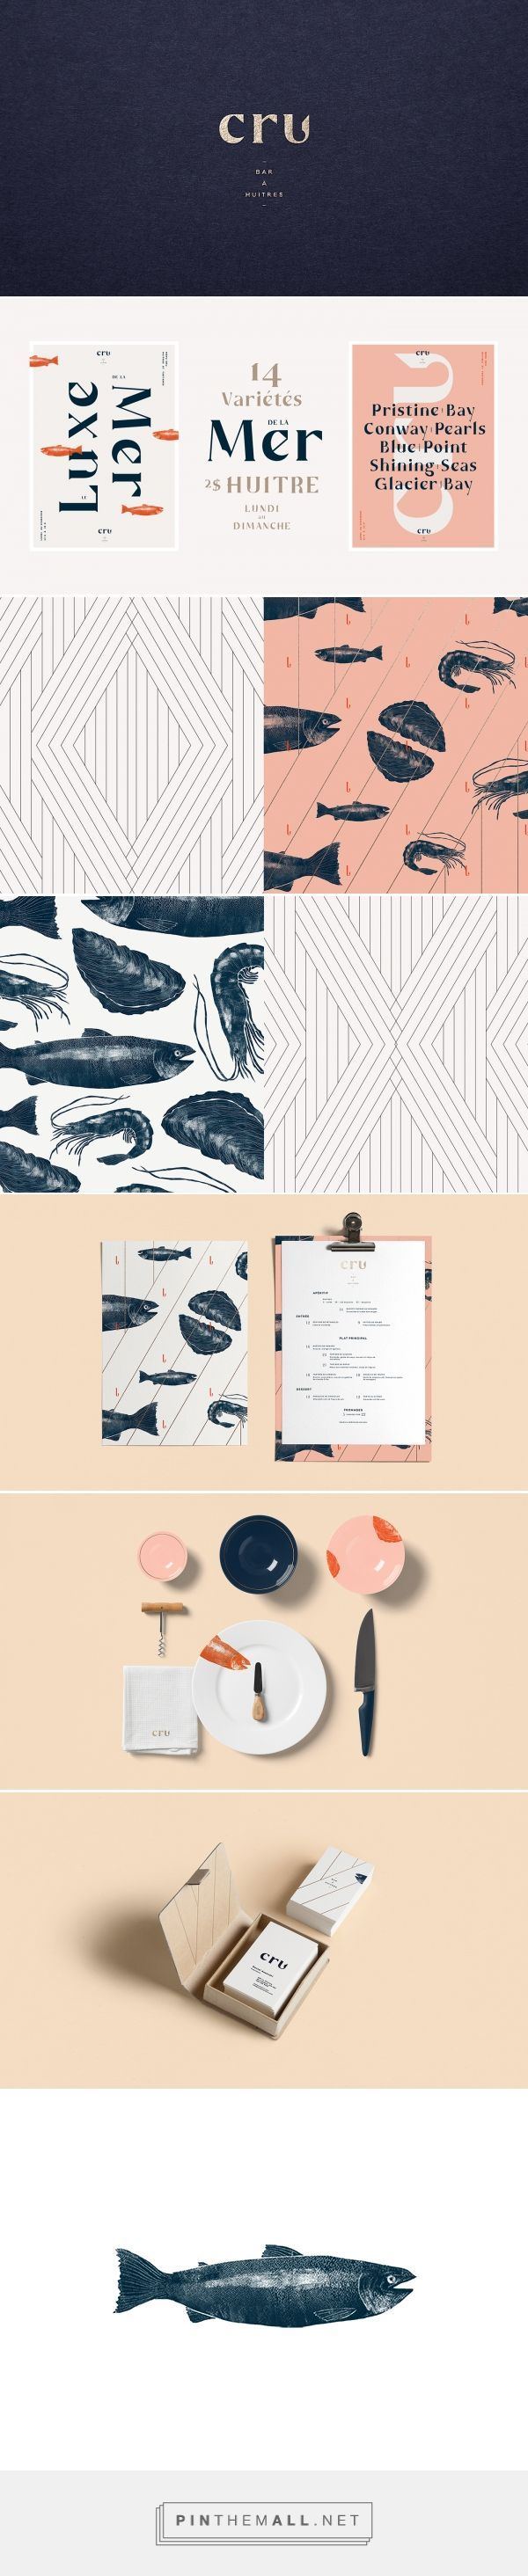 CRU Oyster Bar Restaurant Branding and Menu Design by Sid Lee | Fivestar Branding Agency – Design and Branding Agency & Curated Inspiration Gallery